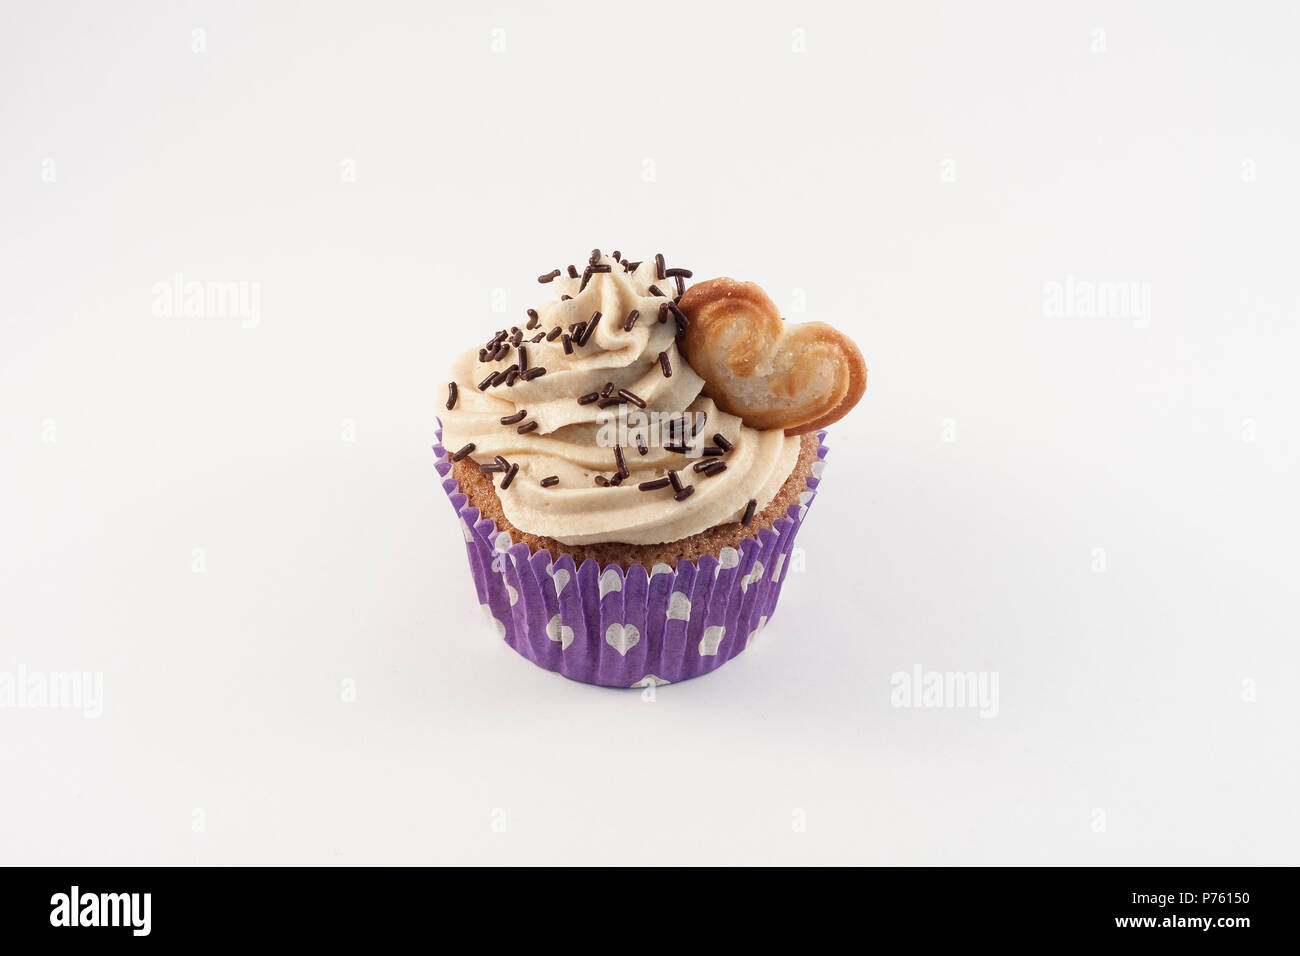 cupcake isolated on white background - Stock Image